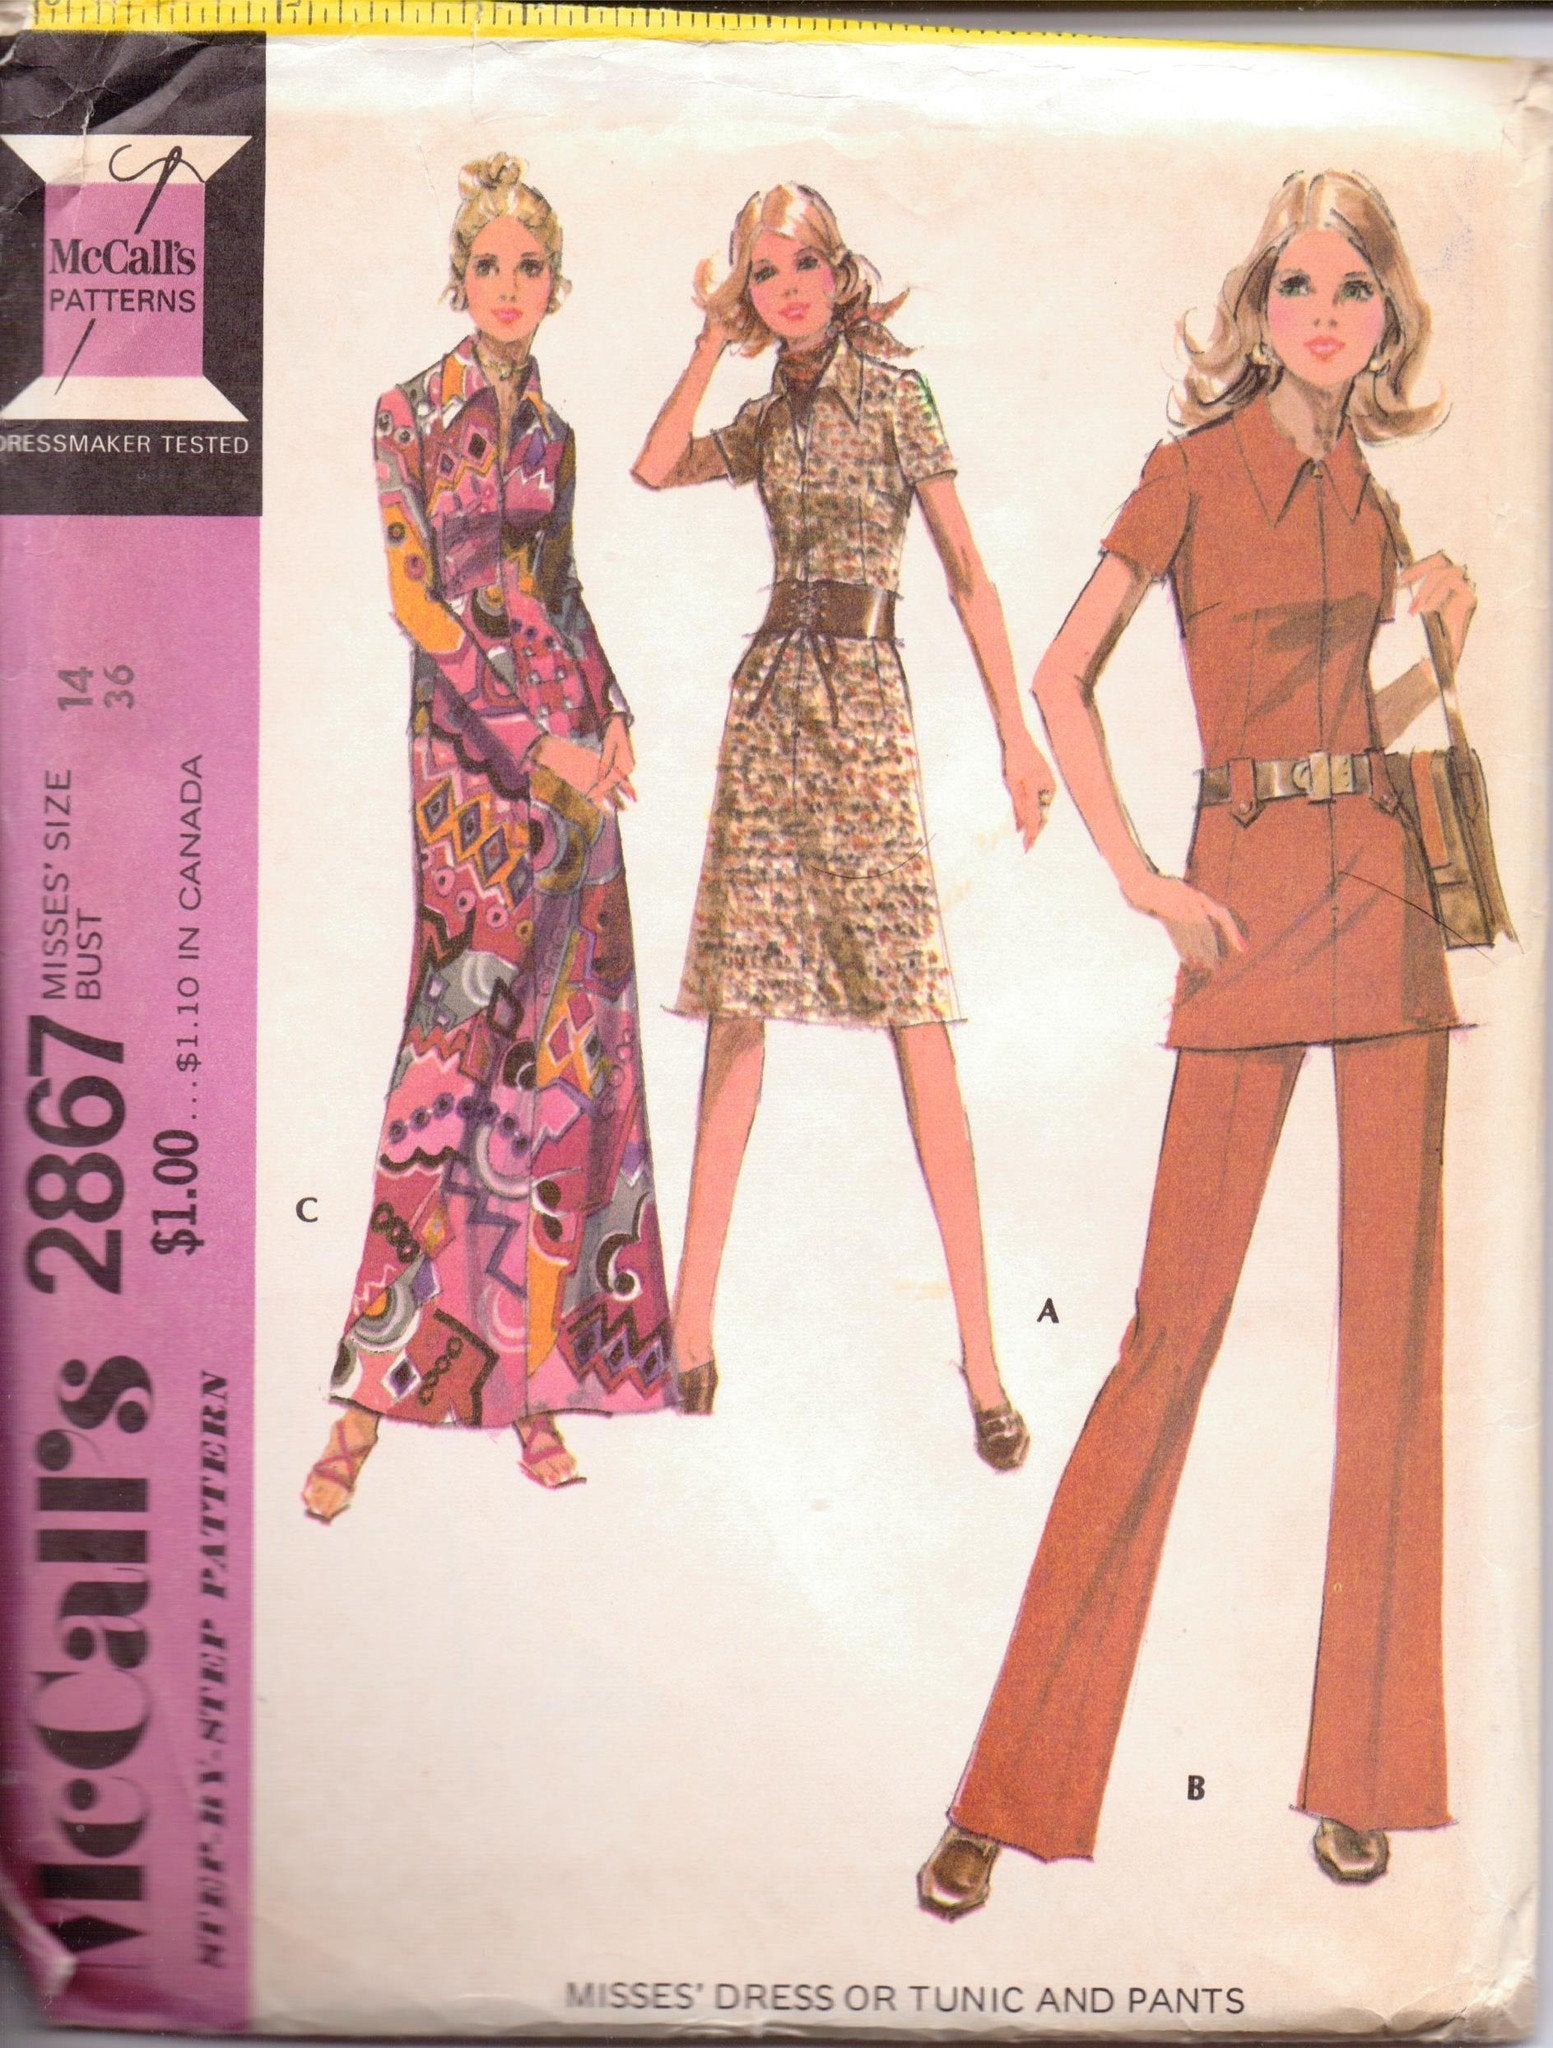 McCall's 2867 Ladies Dress Tunic Top Pants Vintage 1970's Sewing Pattern - VintageStitching - Vintage Sewing Patterns